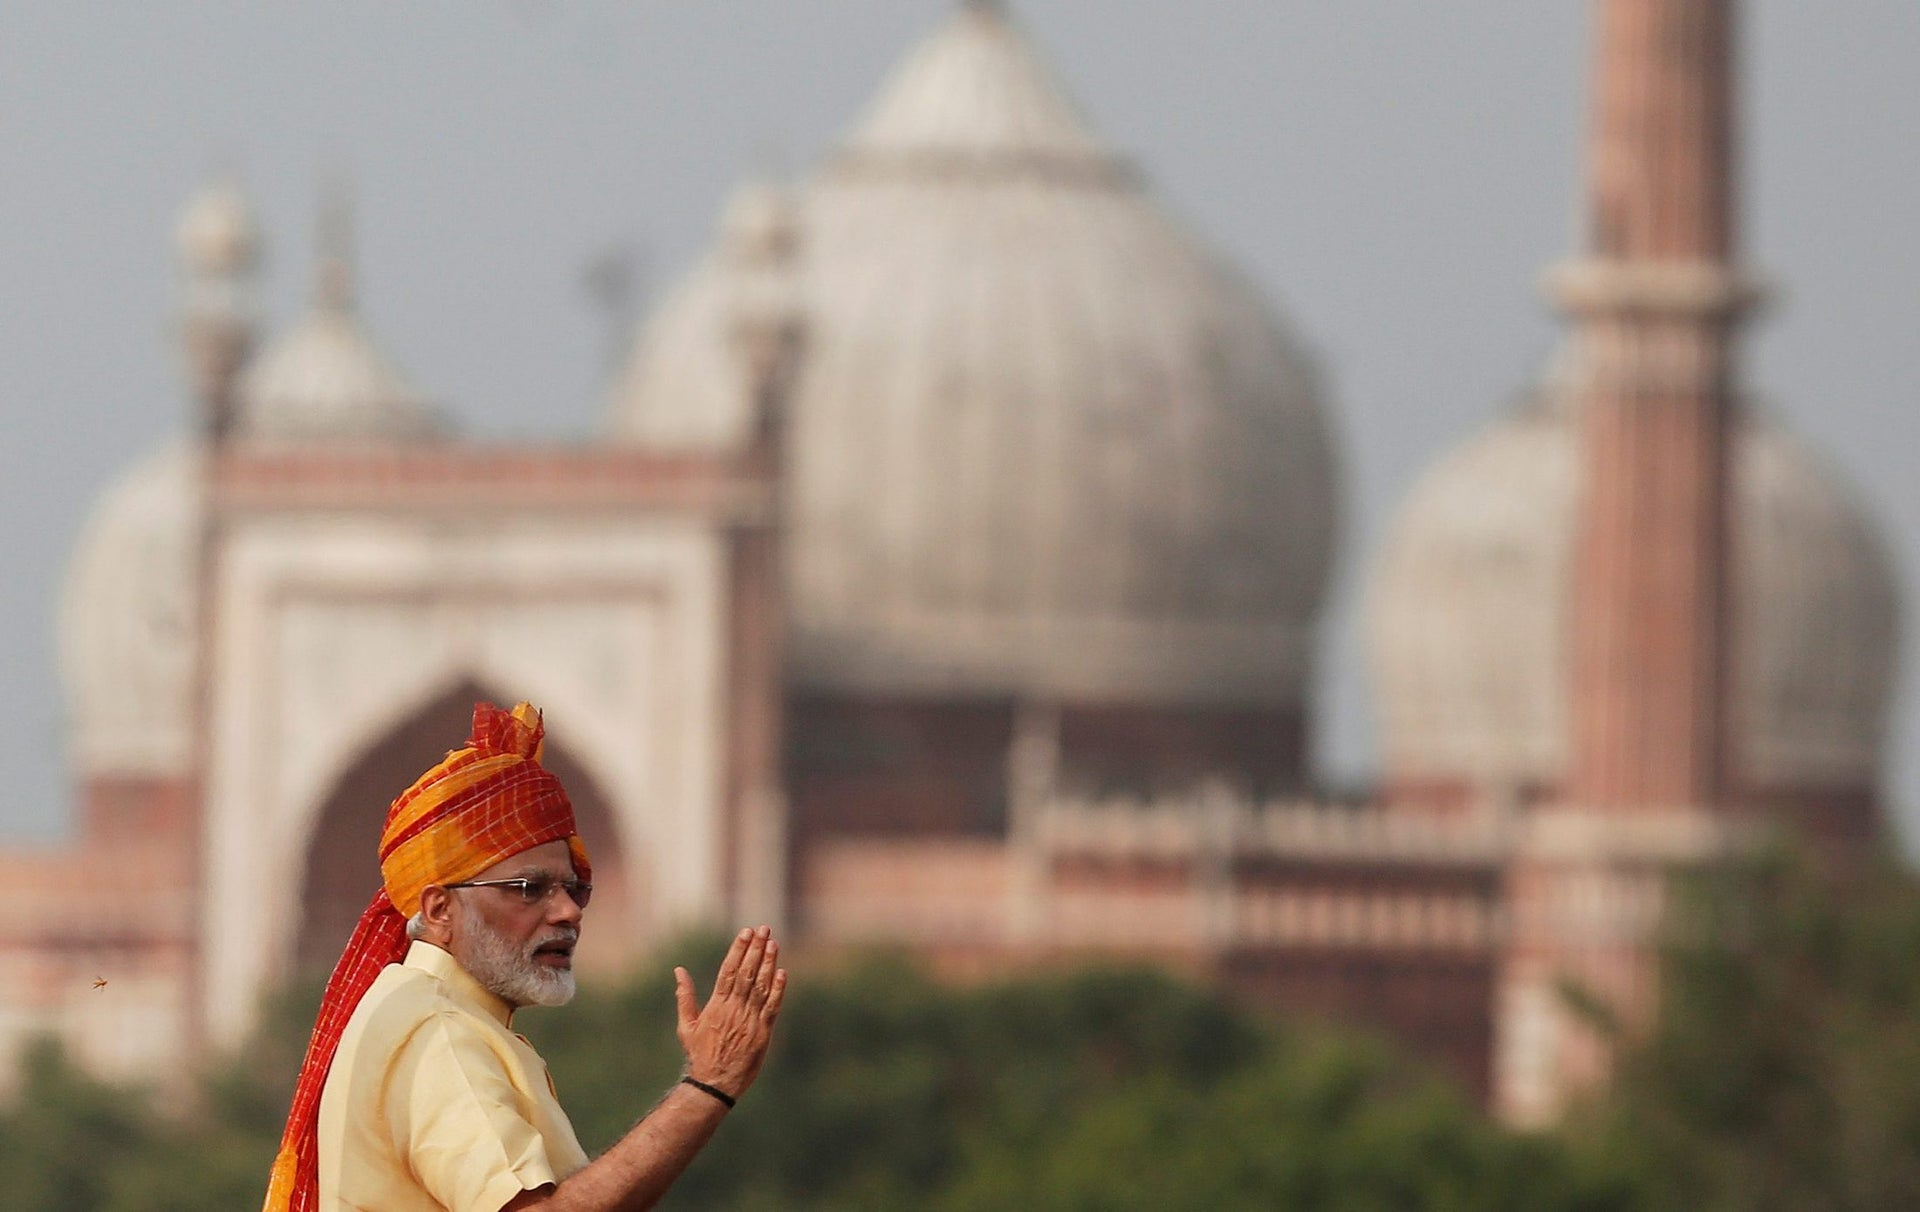 Indian Prime Minister Narendra Modi gestures as he addresses the nation from the historic Red Fort during Independence Day celebrations in Delhi, India August 15, 2017.